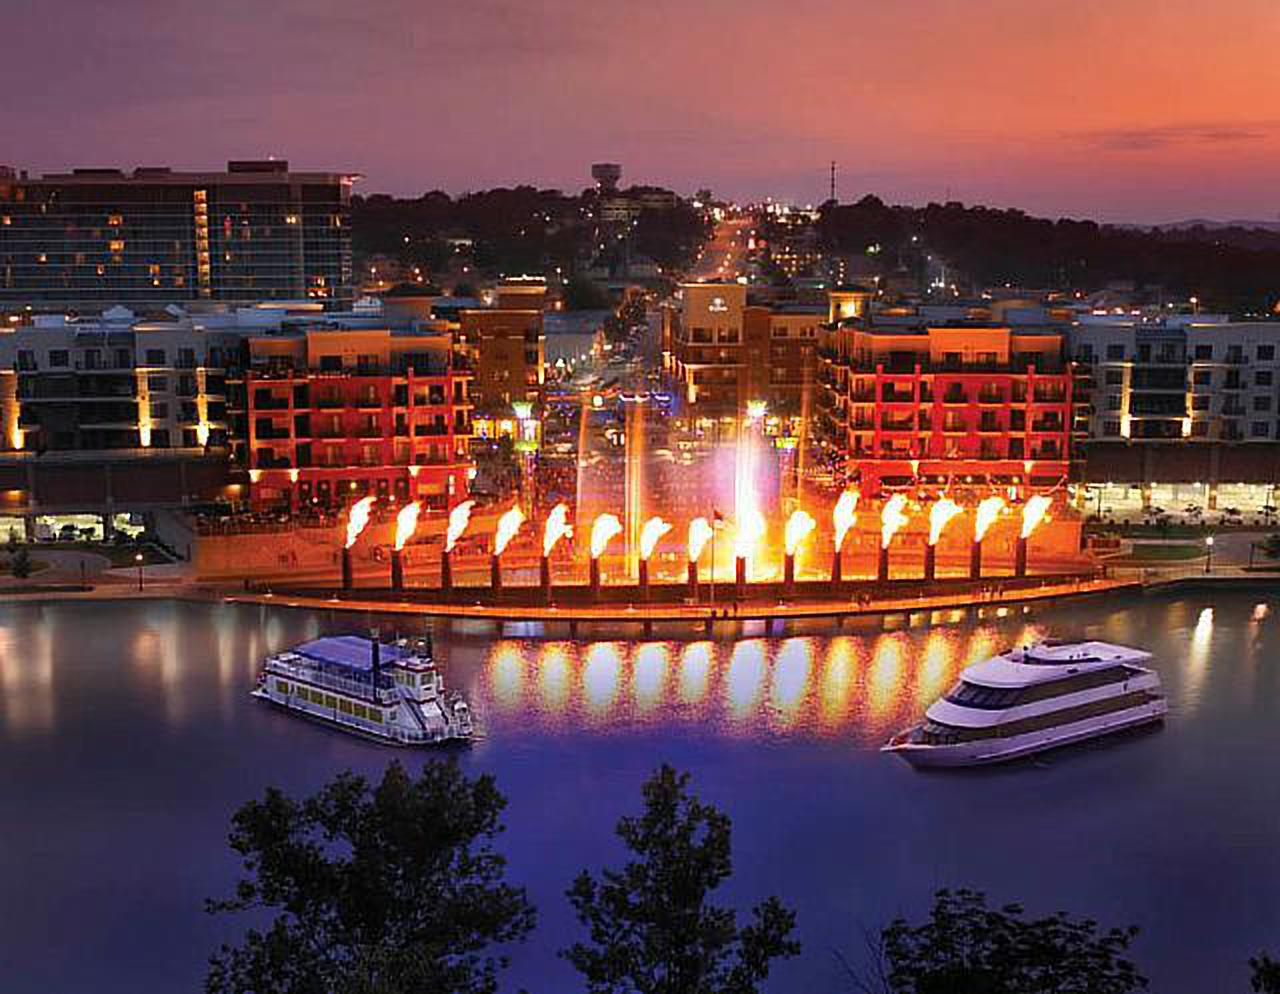 night view of the Fire and Ice show downtown at the Branson landing with boats parked on the water in front in Branson, Missouri, USA